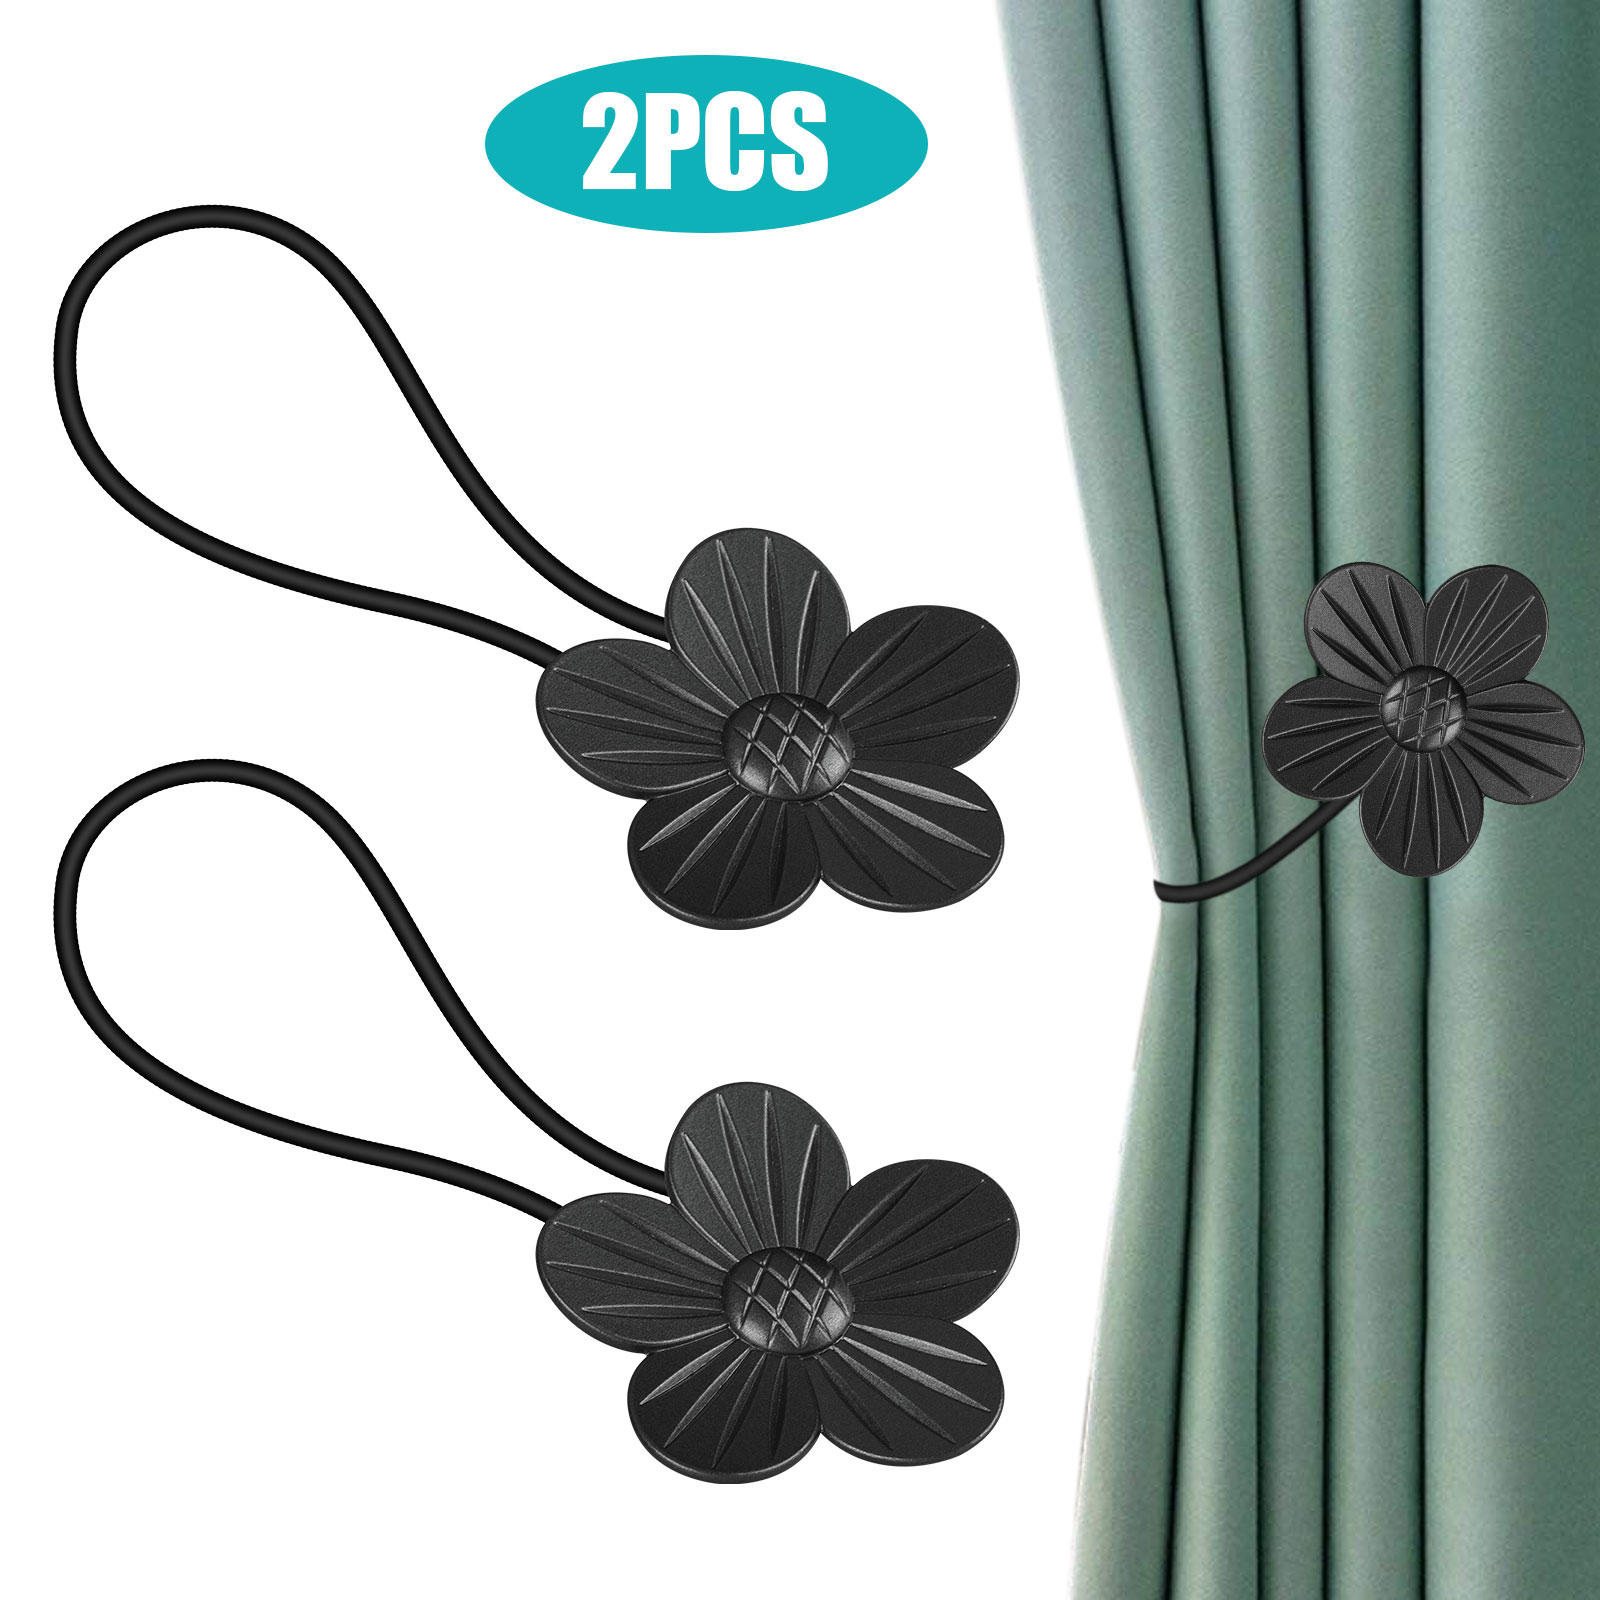 tsv 6 4 2pcs magnetic curtain tieback decorative rope holdback simple modern tie backs holders for home curtains 15 7 inch long plum blossom shape